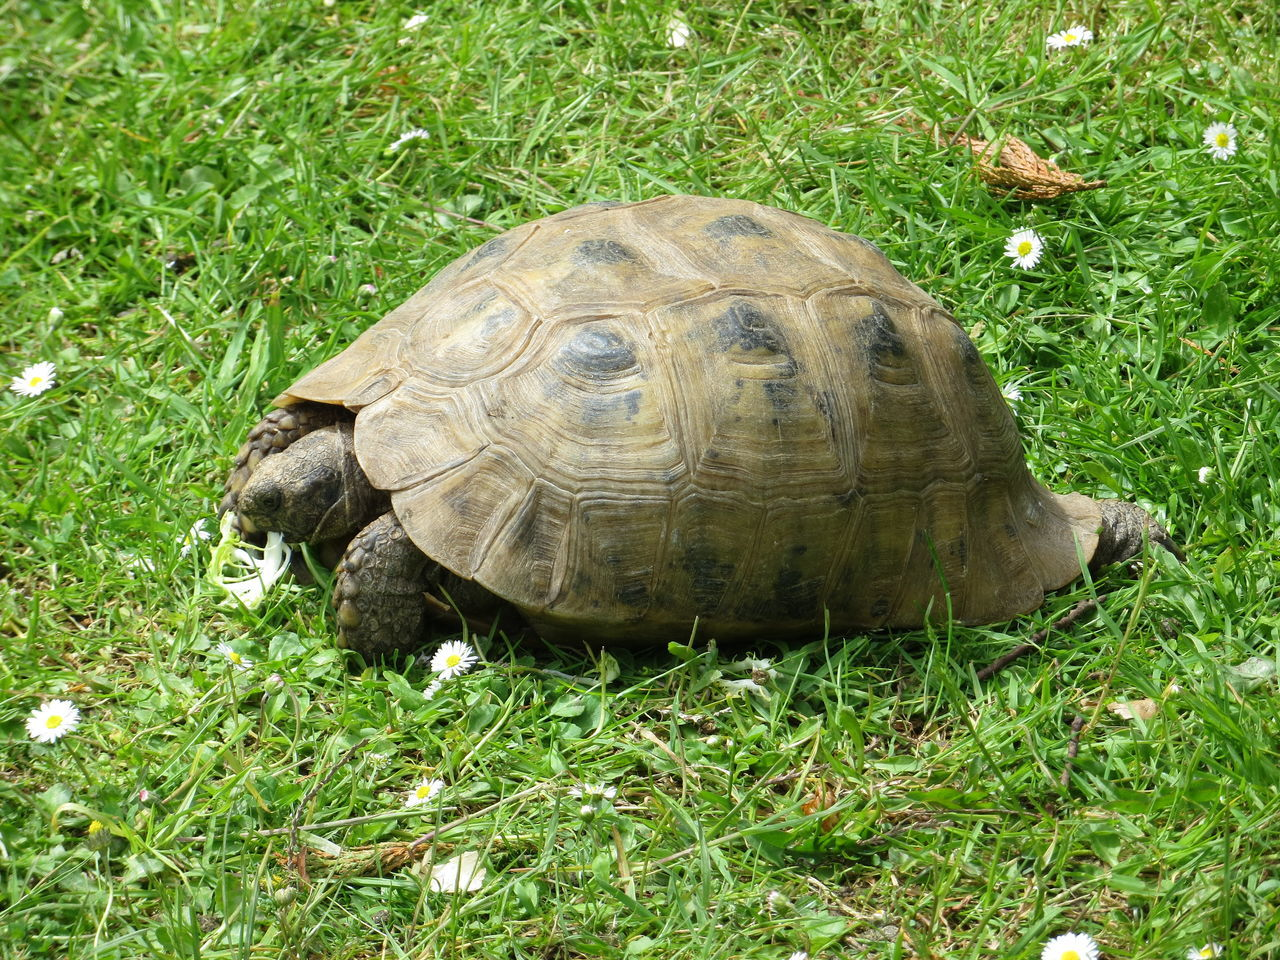 High Angle View Of Tortoise On Grassy Field